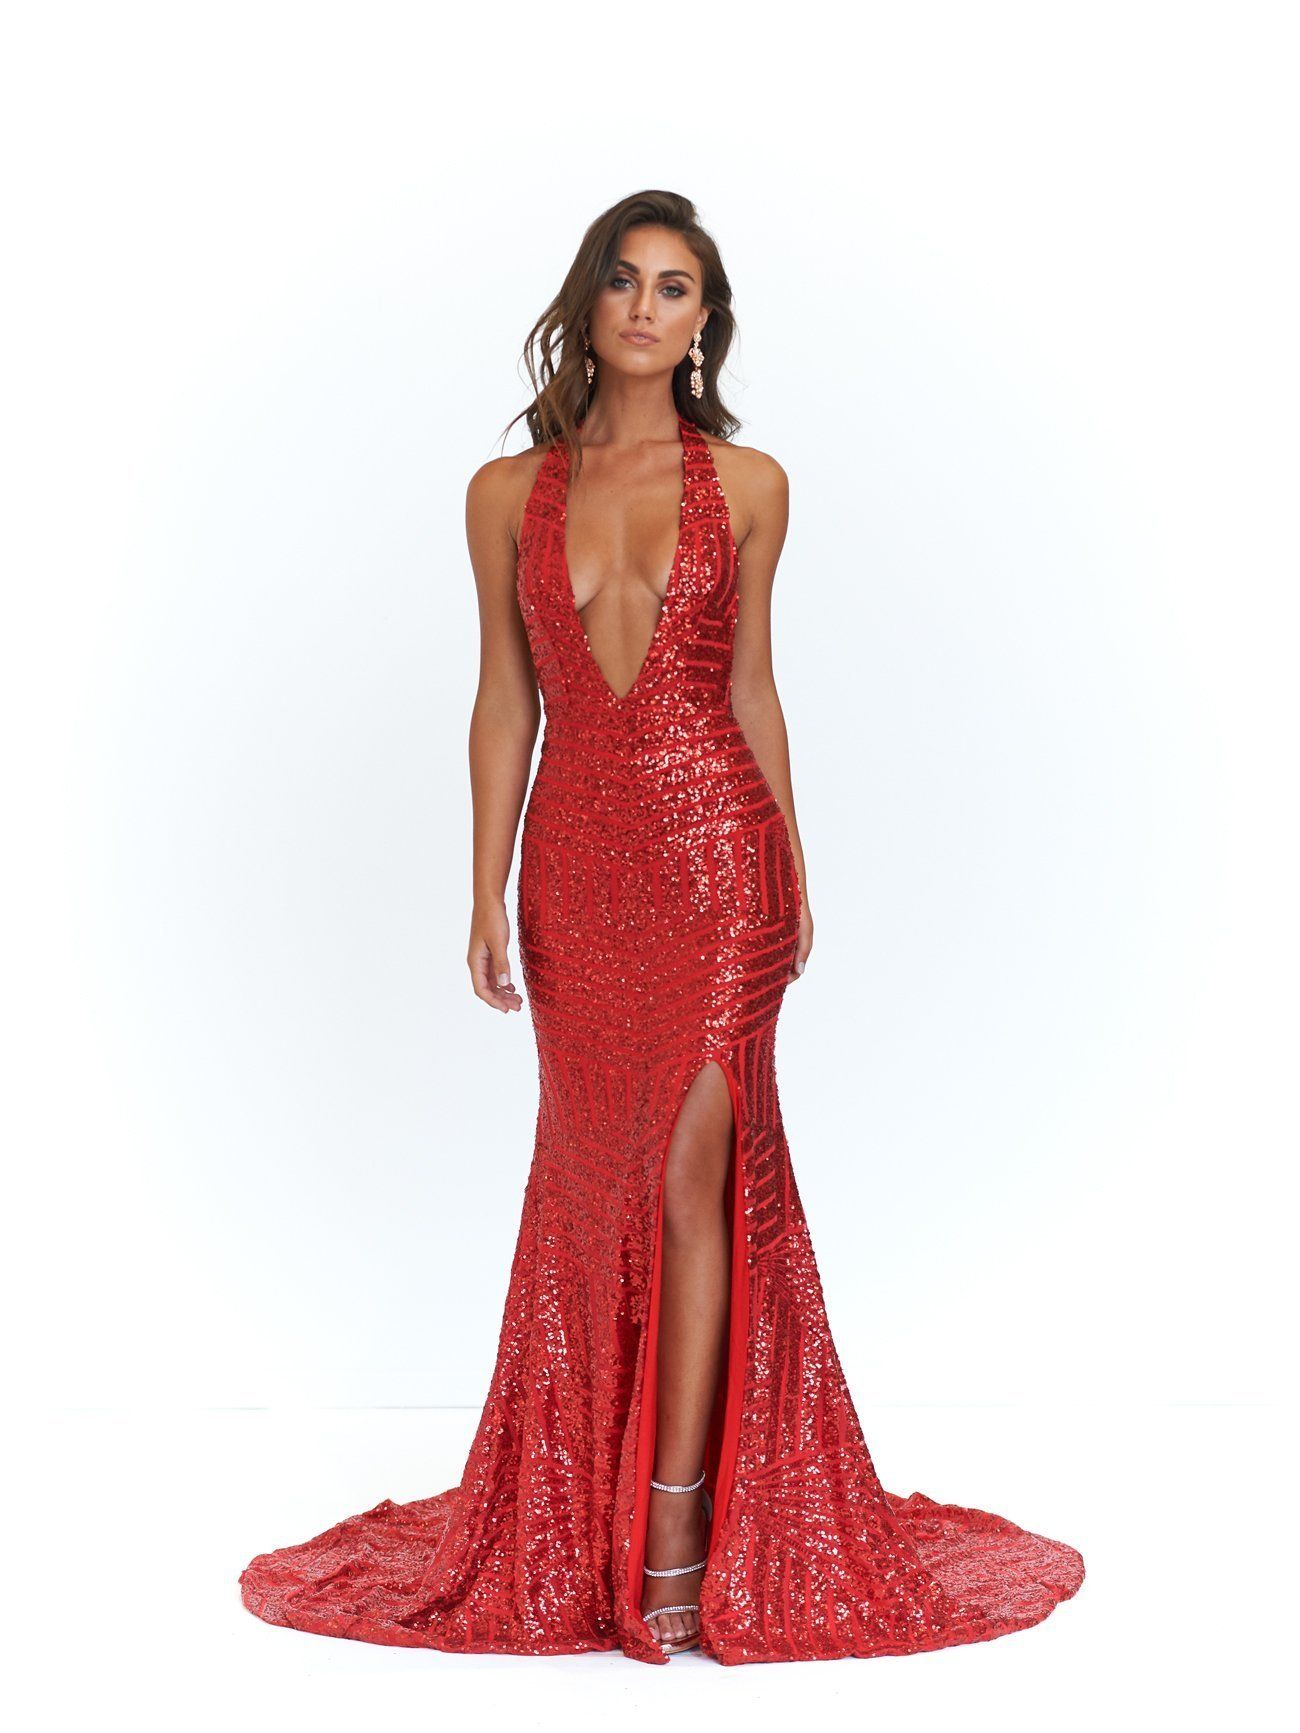 Red Sequin Prom Dress Sequin Gown Pretty Prom Dresses Dresses [ 1733 x 1300 Pixel ]